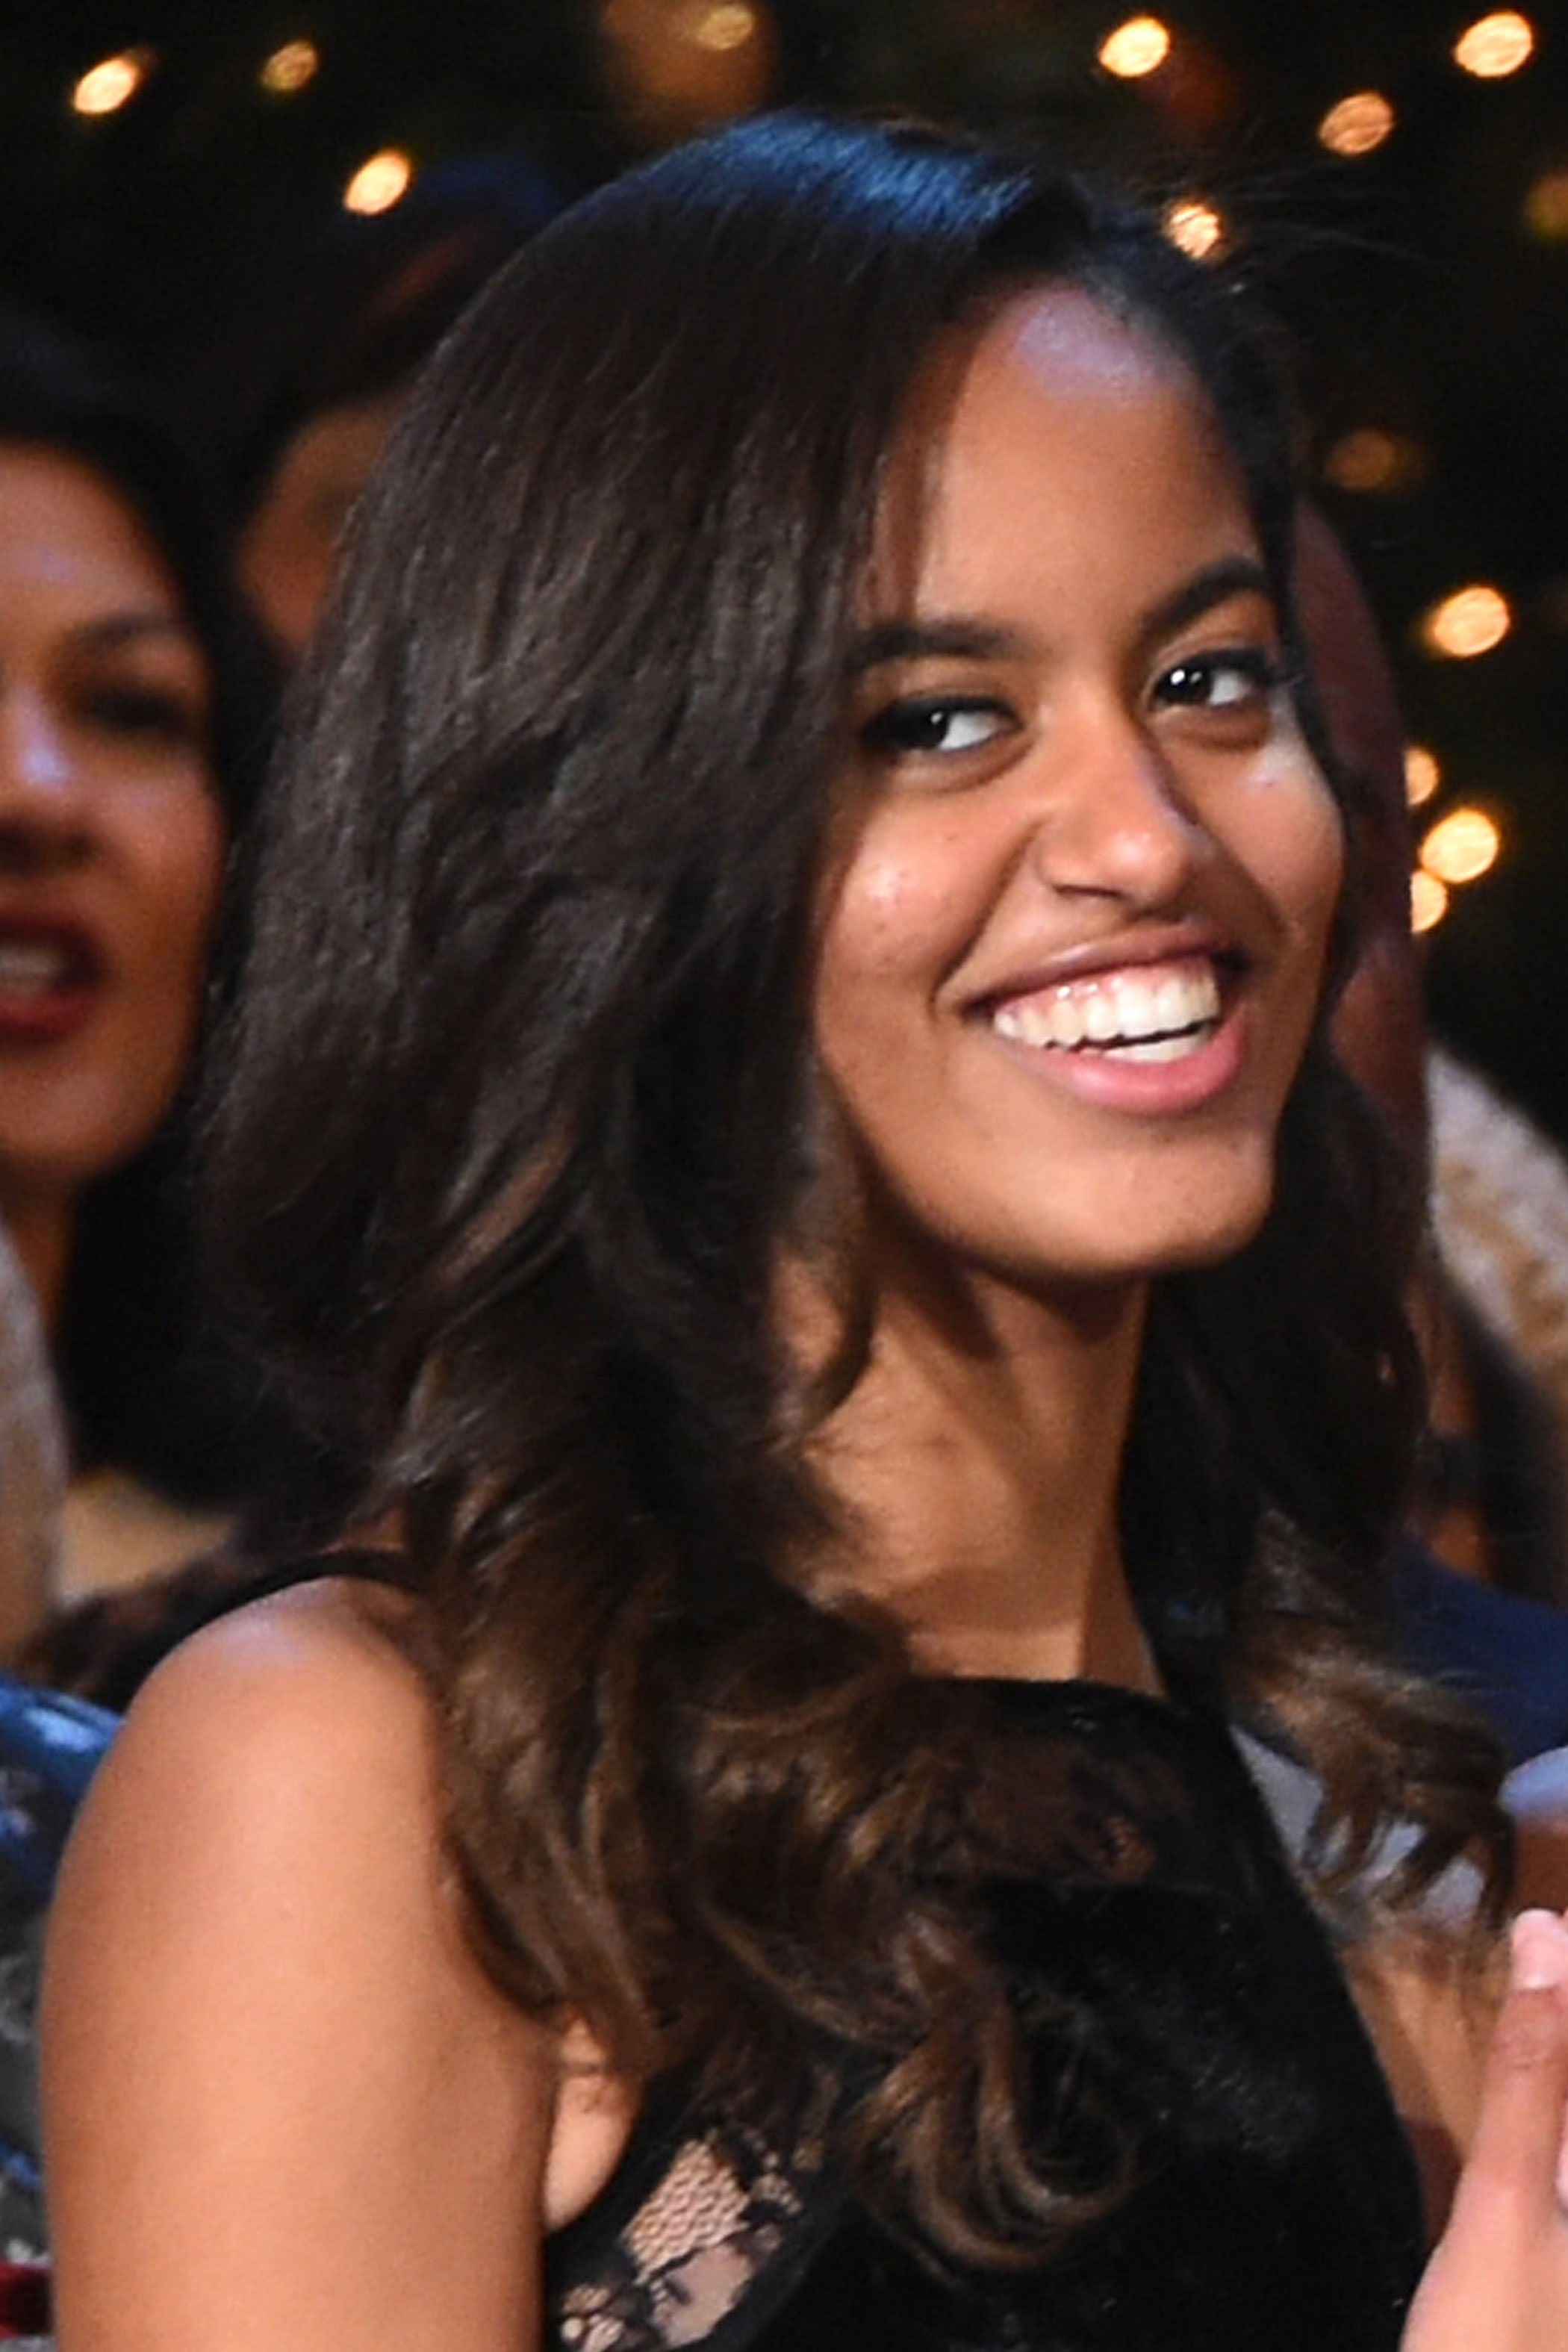 Most Influential Teens 2015 Malia Obama